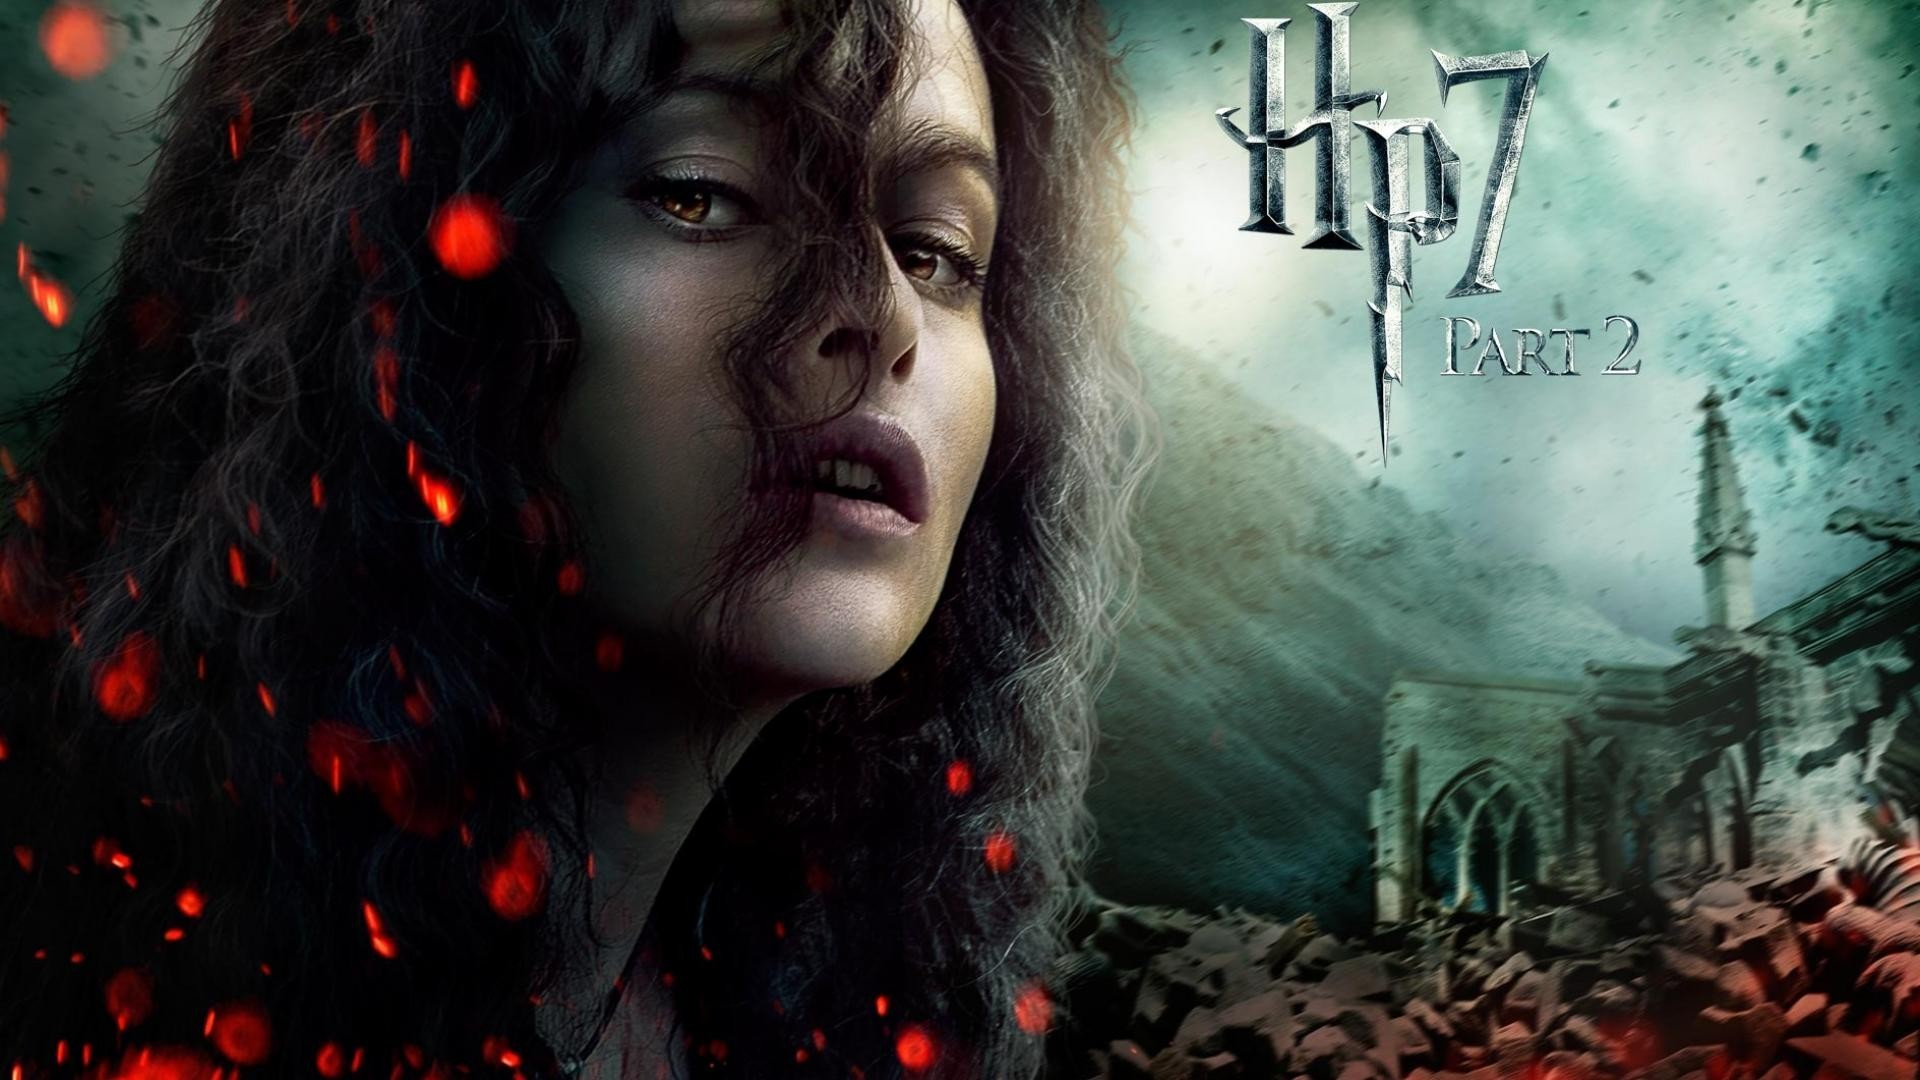 Must see Wallpaper Harry Potter Halloween - 13924000618363167712  Collection_968312.jpg